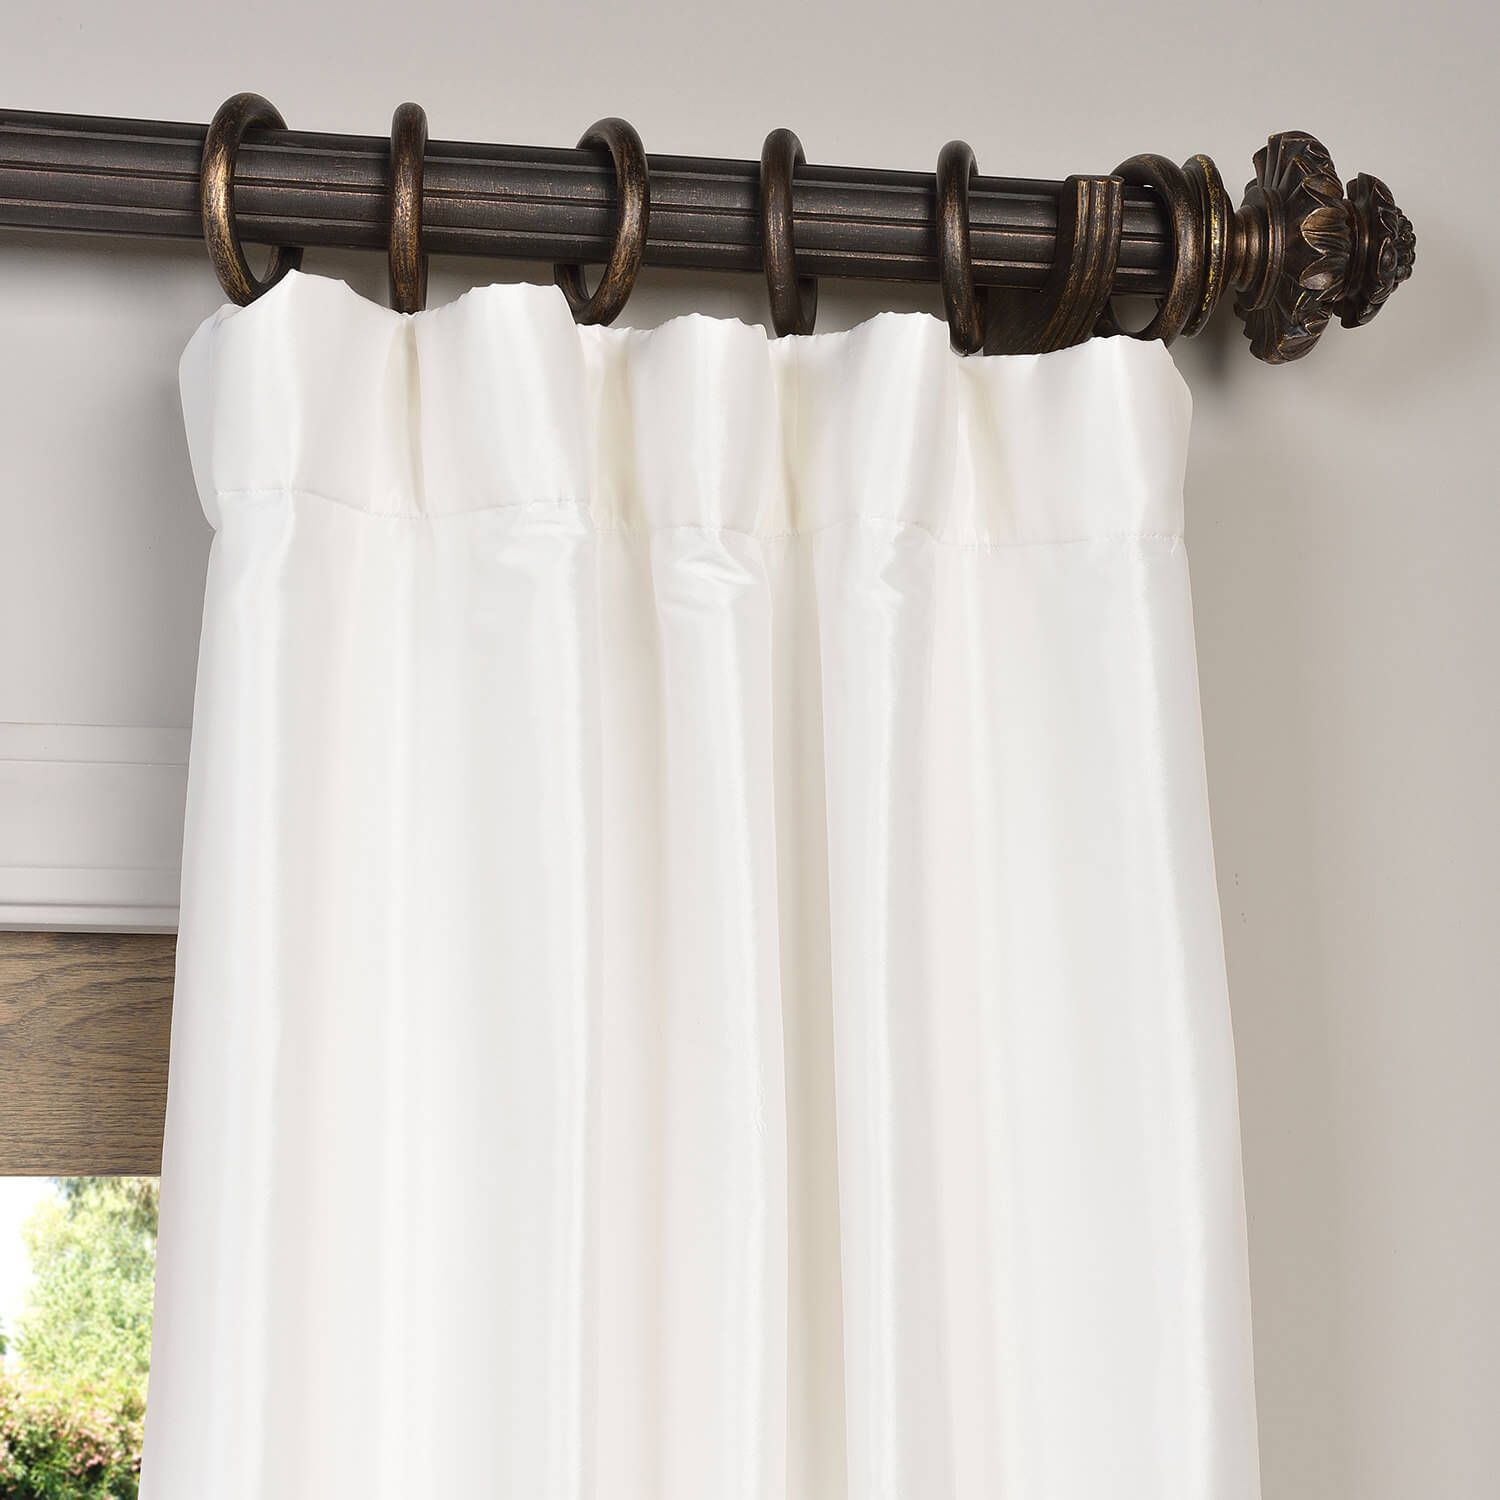 New window coverings 2018  buy eggshell faux silk taffeta curtains drapes  window coverings